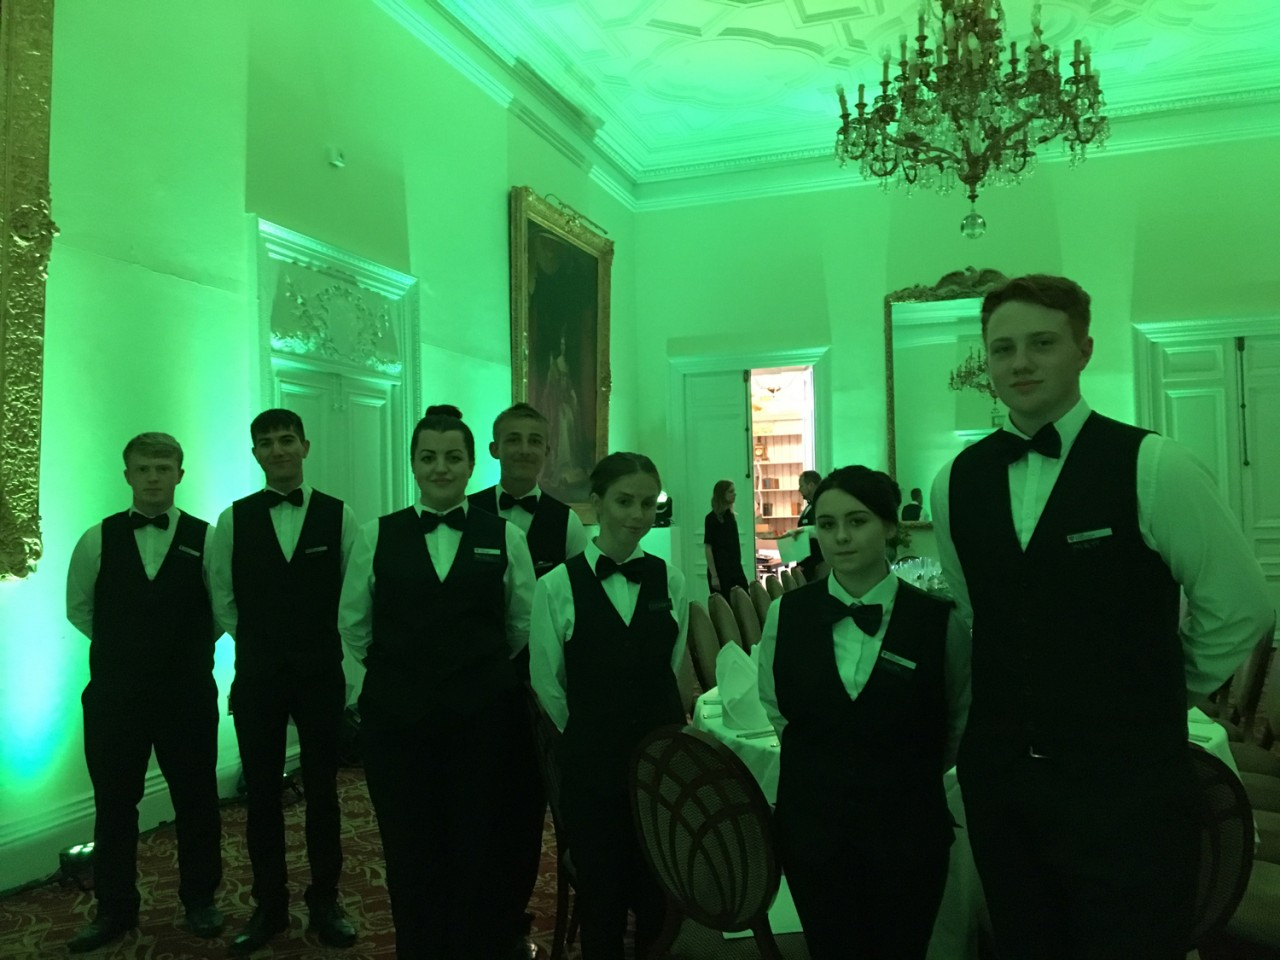 Formal Dinner at Fawsley Hall - Hospitality Staff